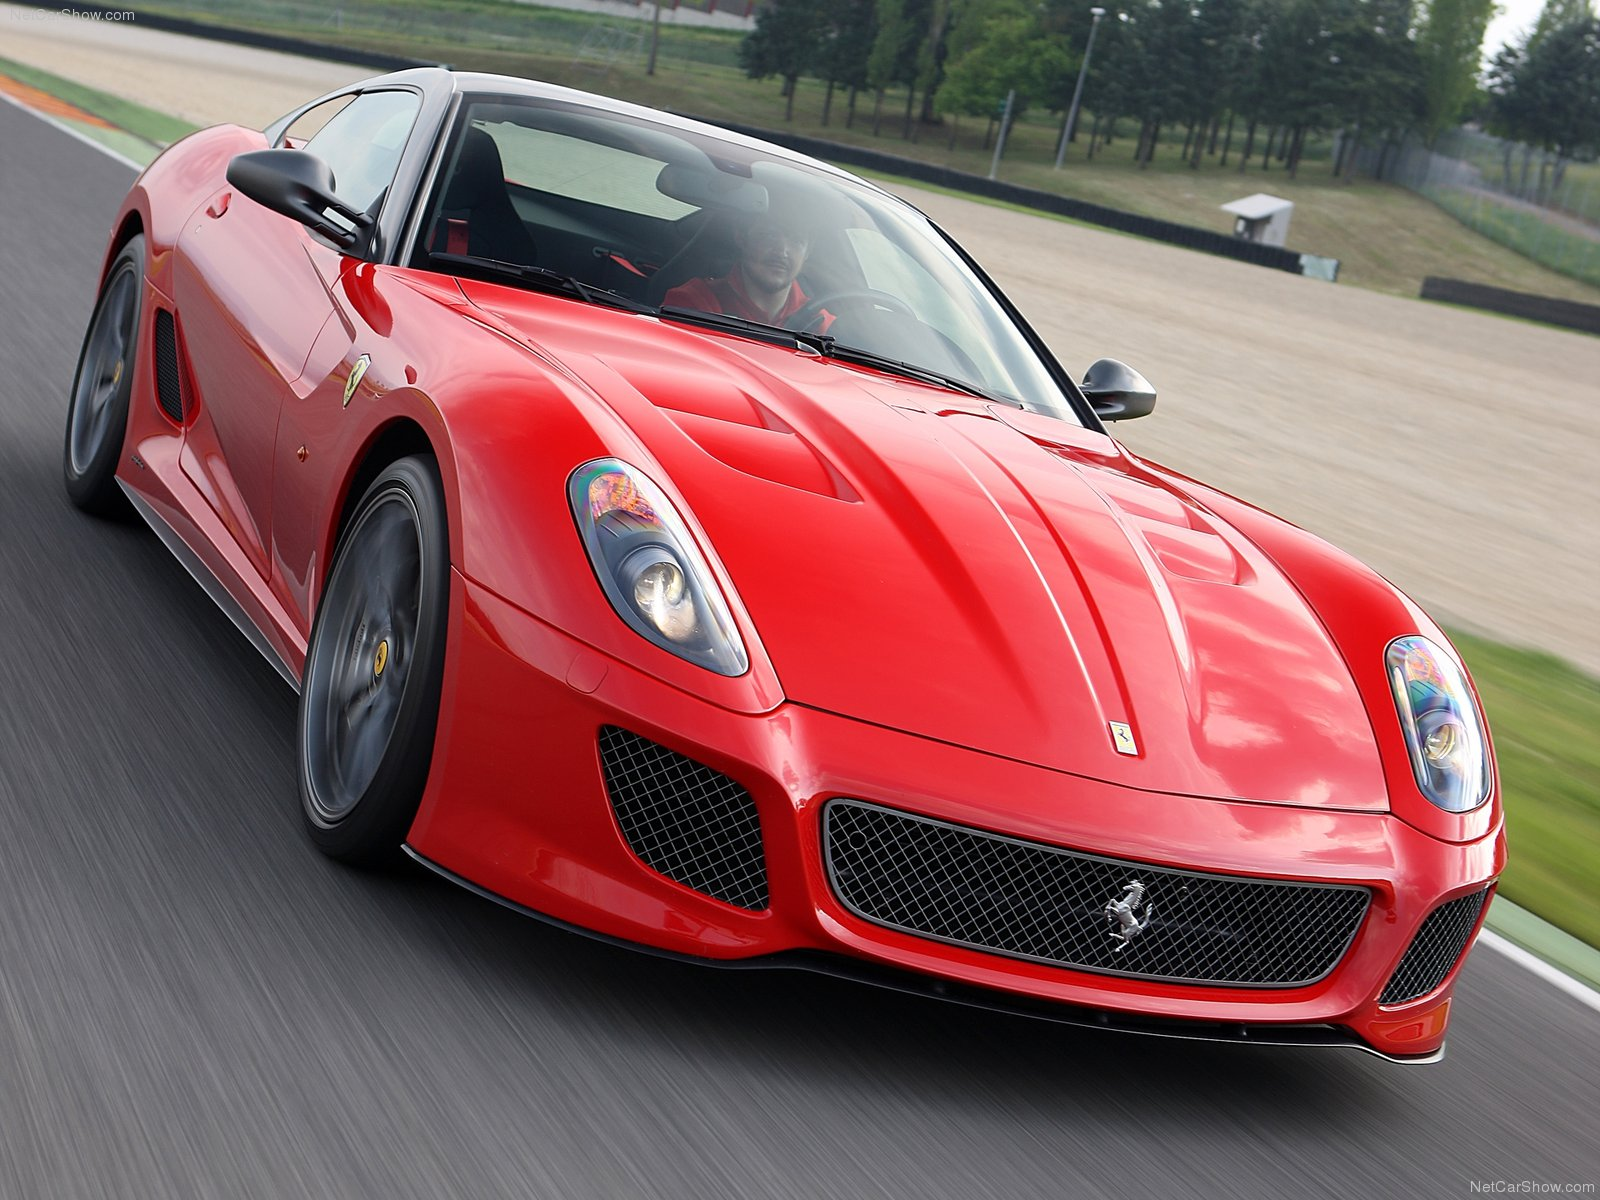 3dtuning of ferrari 599 coupe 2011 3dtuning unique on line ferrari 599 coupe 2011 vanachro Image collections